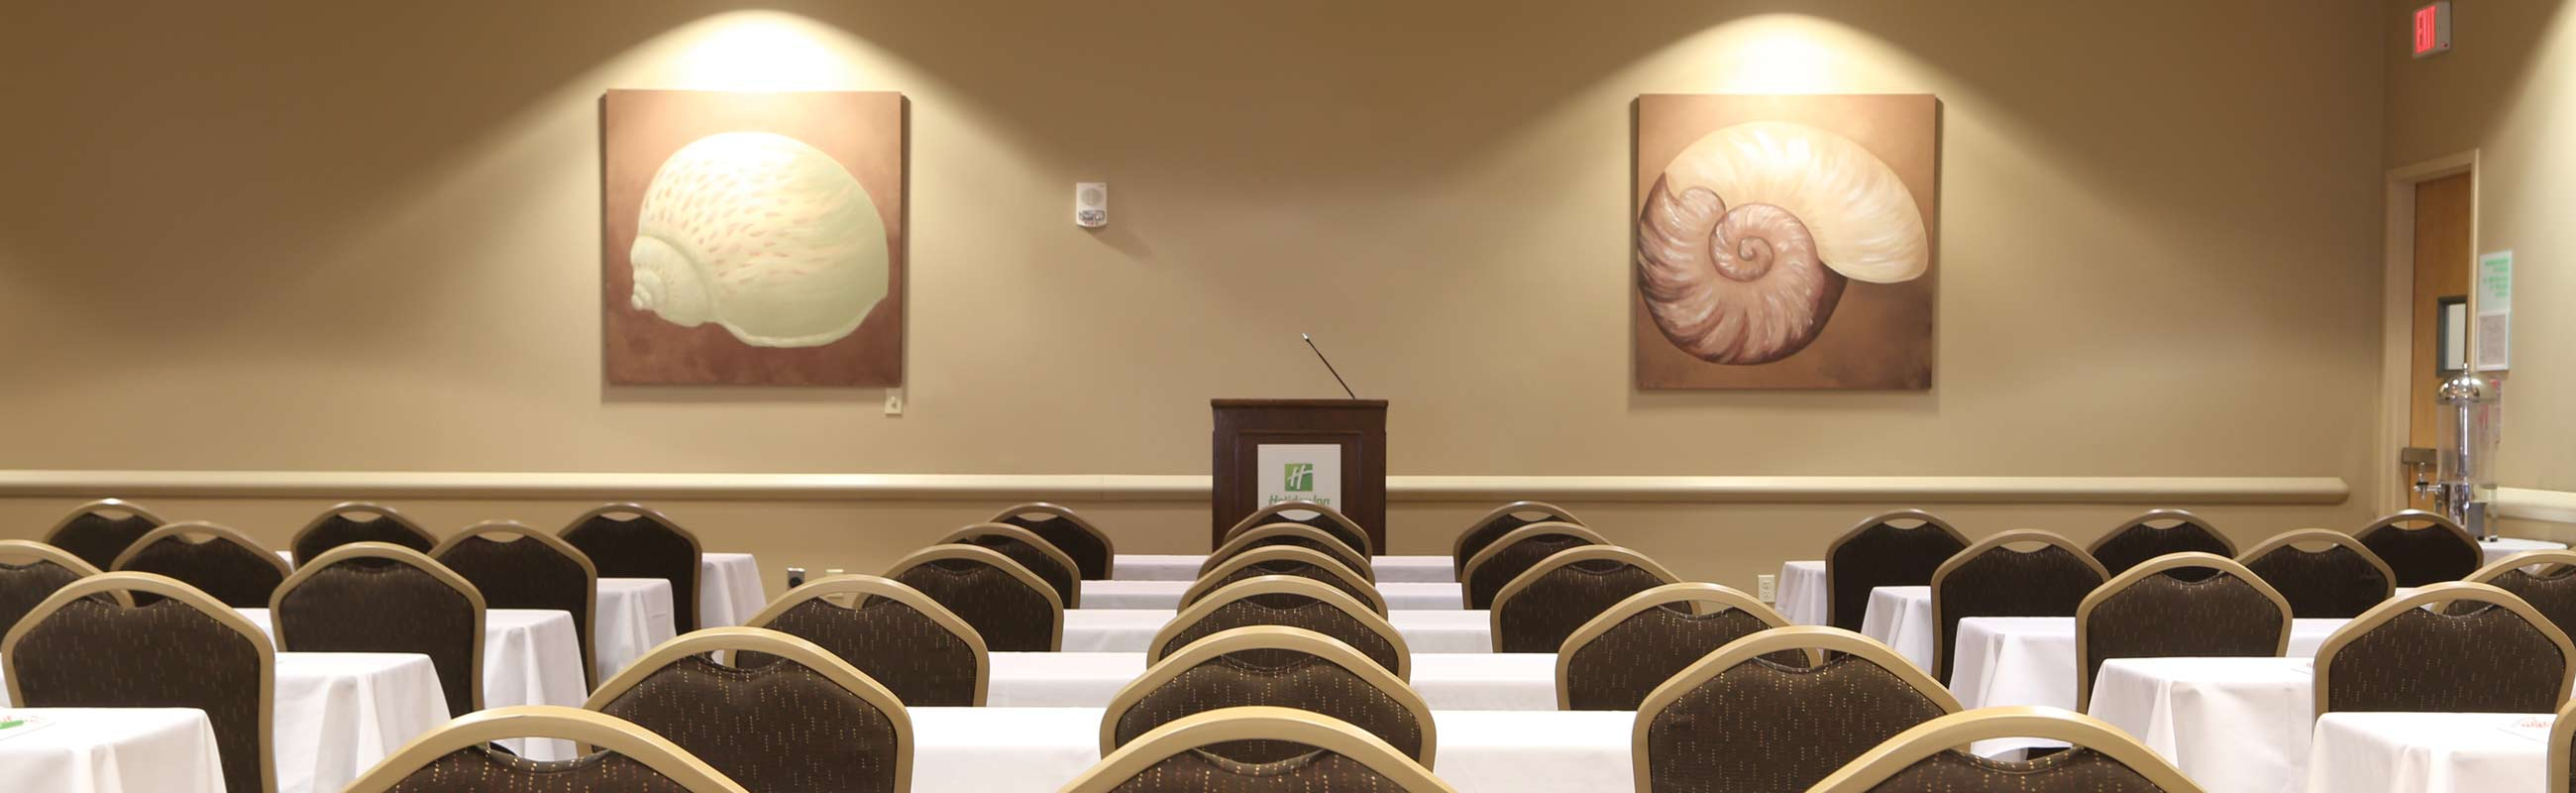 flexible meeting space for your business meetings